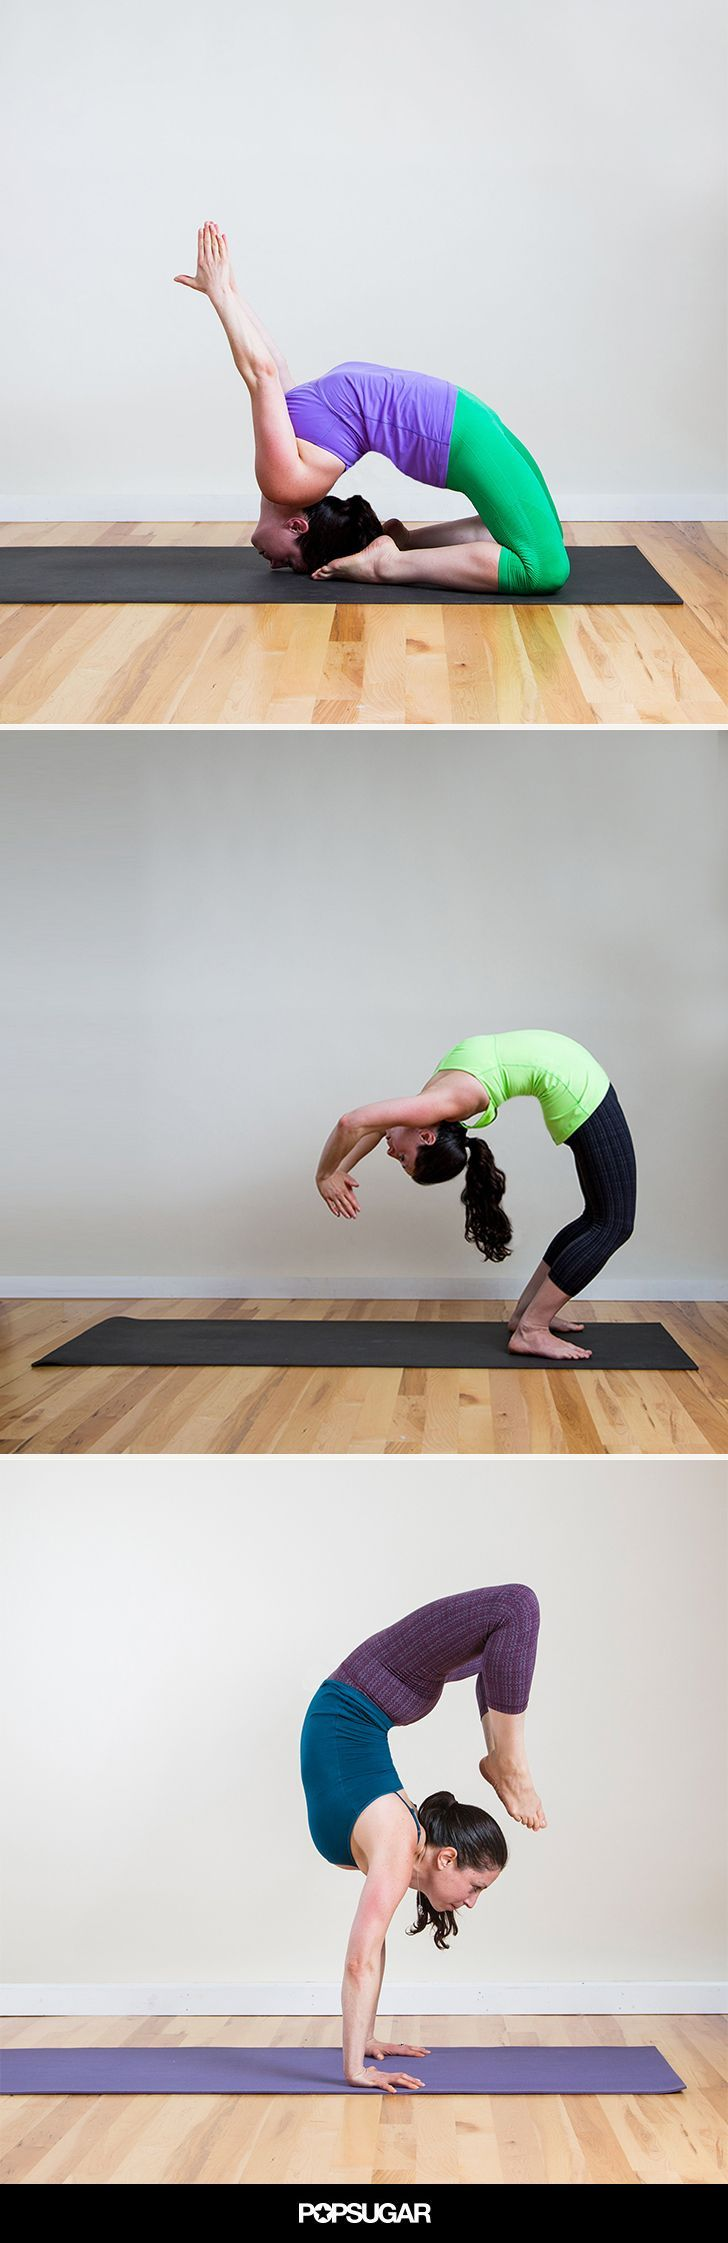 Photos of 25 advanced yoga poses to challenge your practice (or just to be inspi...